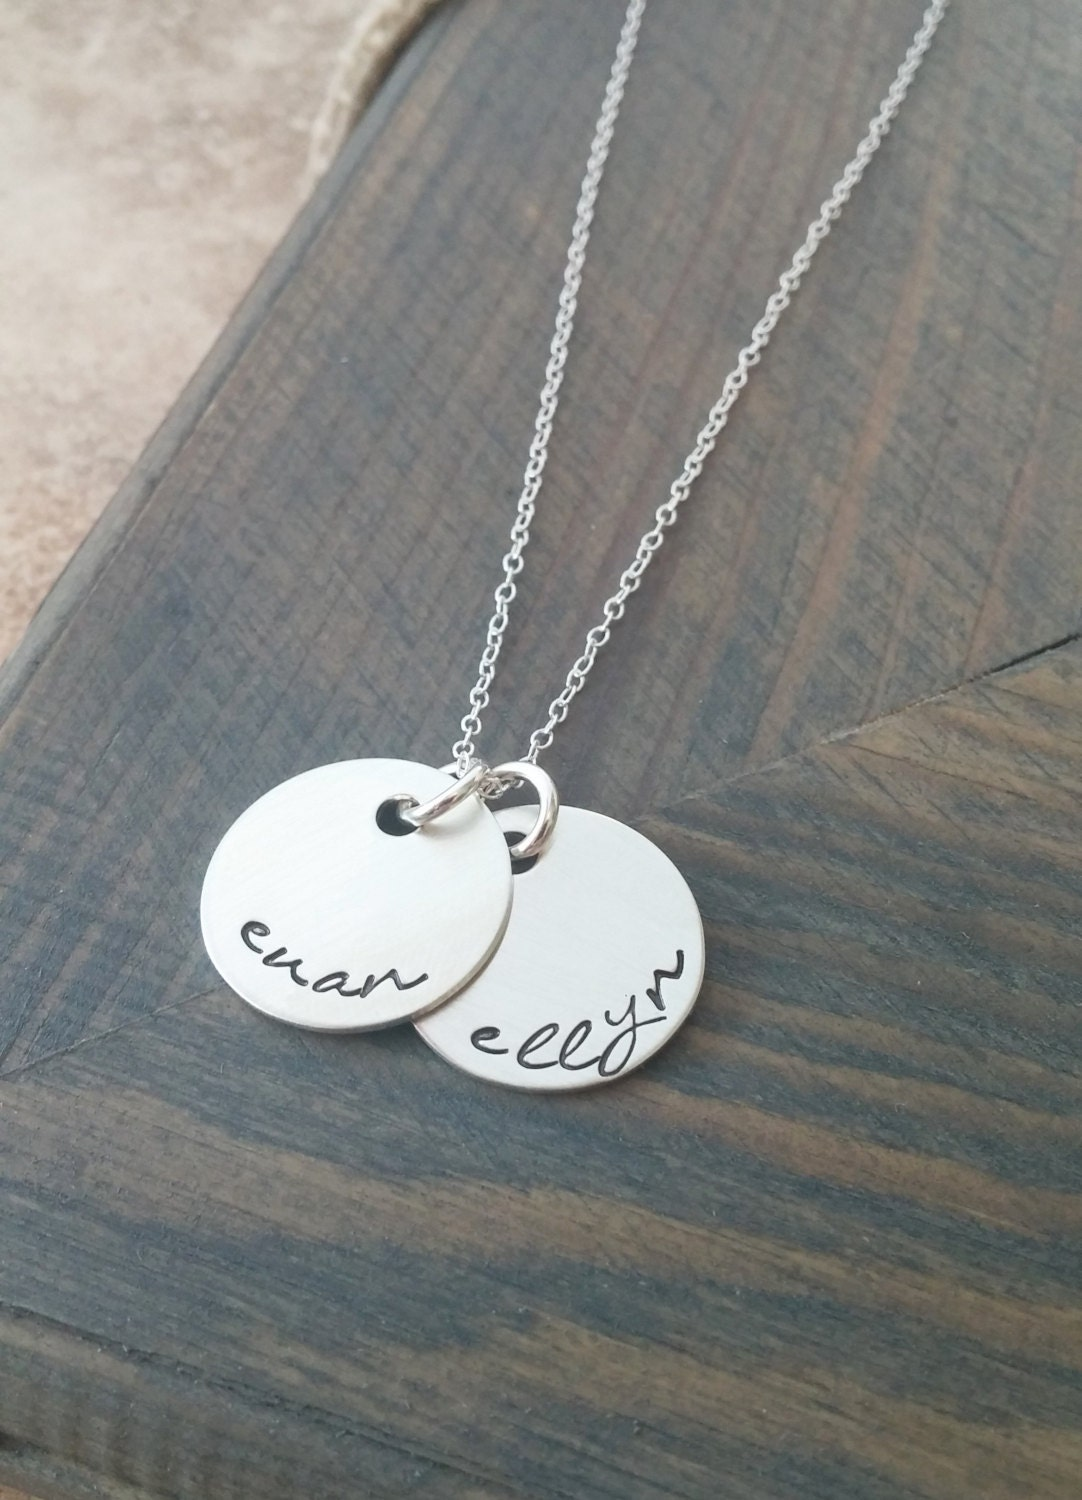 Personalized Name Necklace // Hand Stamped Jewelry